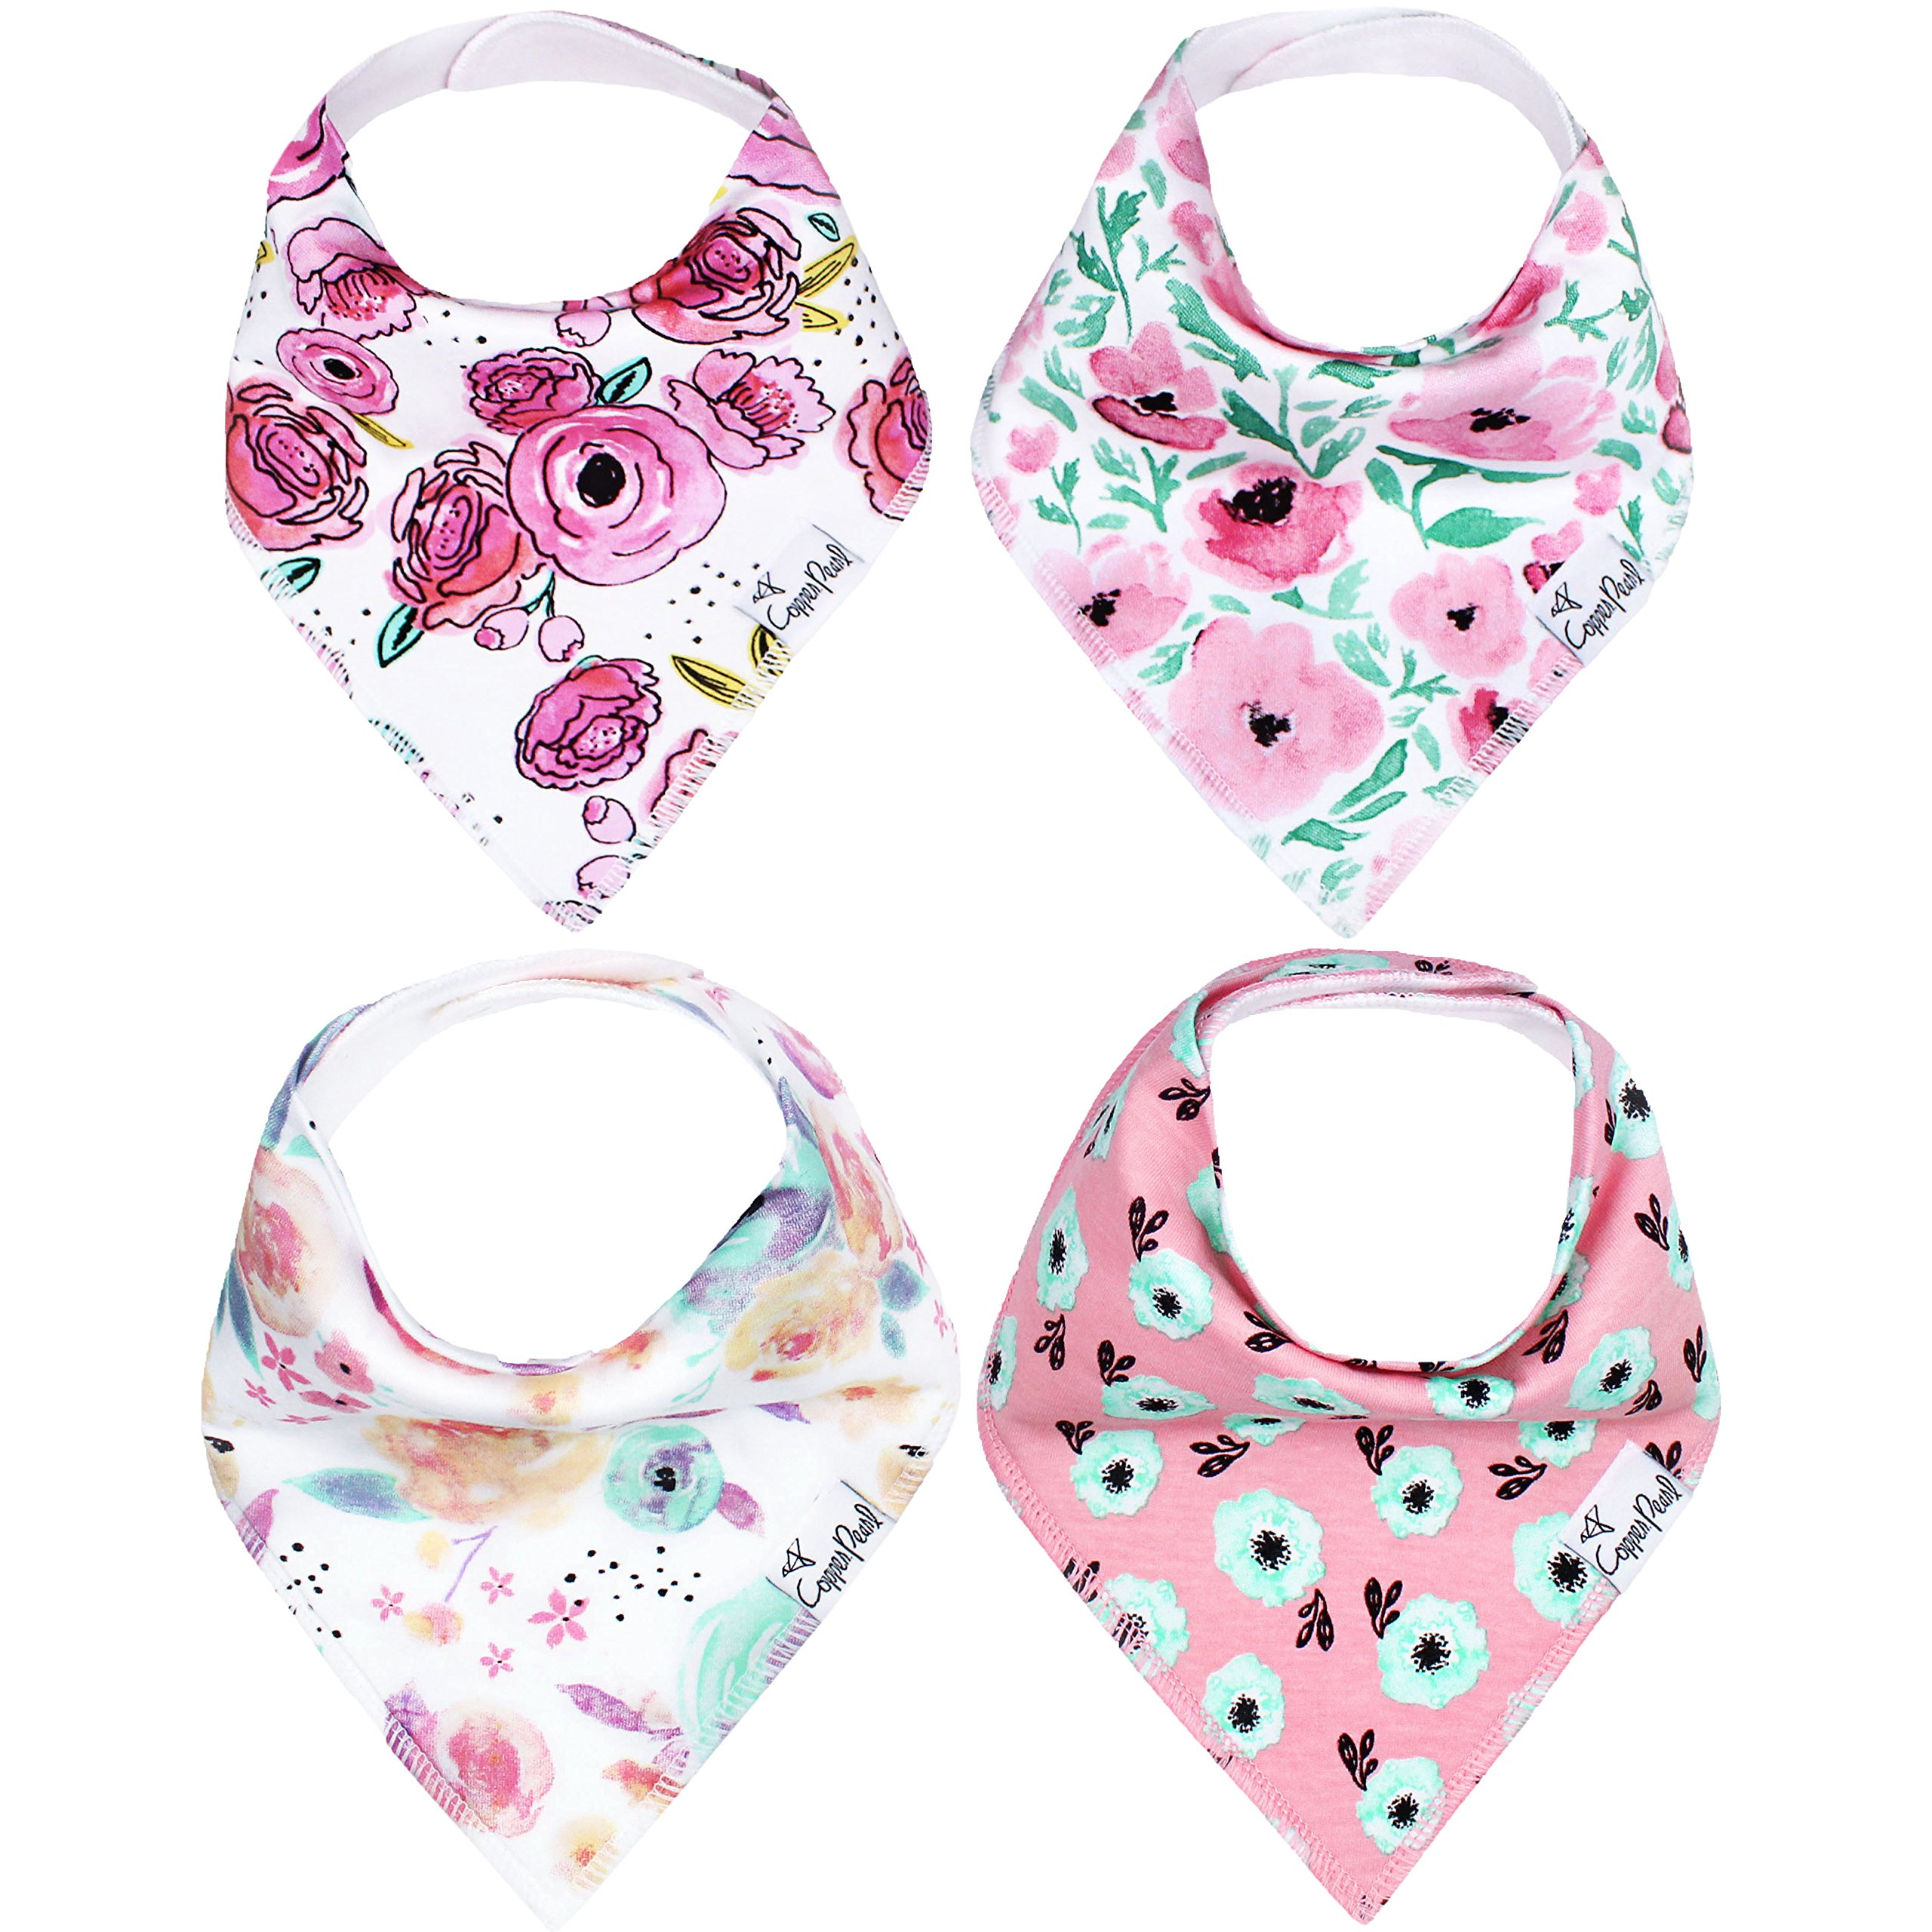 Baby Bandana Drool Bibs for Drooling and Teething 4 Pack Gift Set for Girls ''Bloom Set'' by Copper Pearl by Copper Pearl